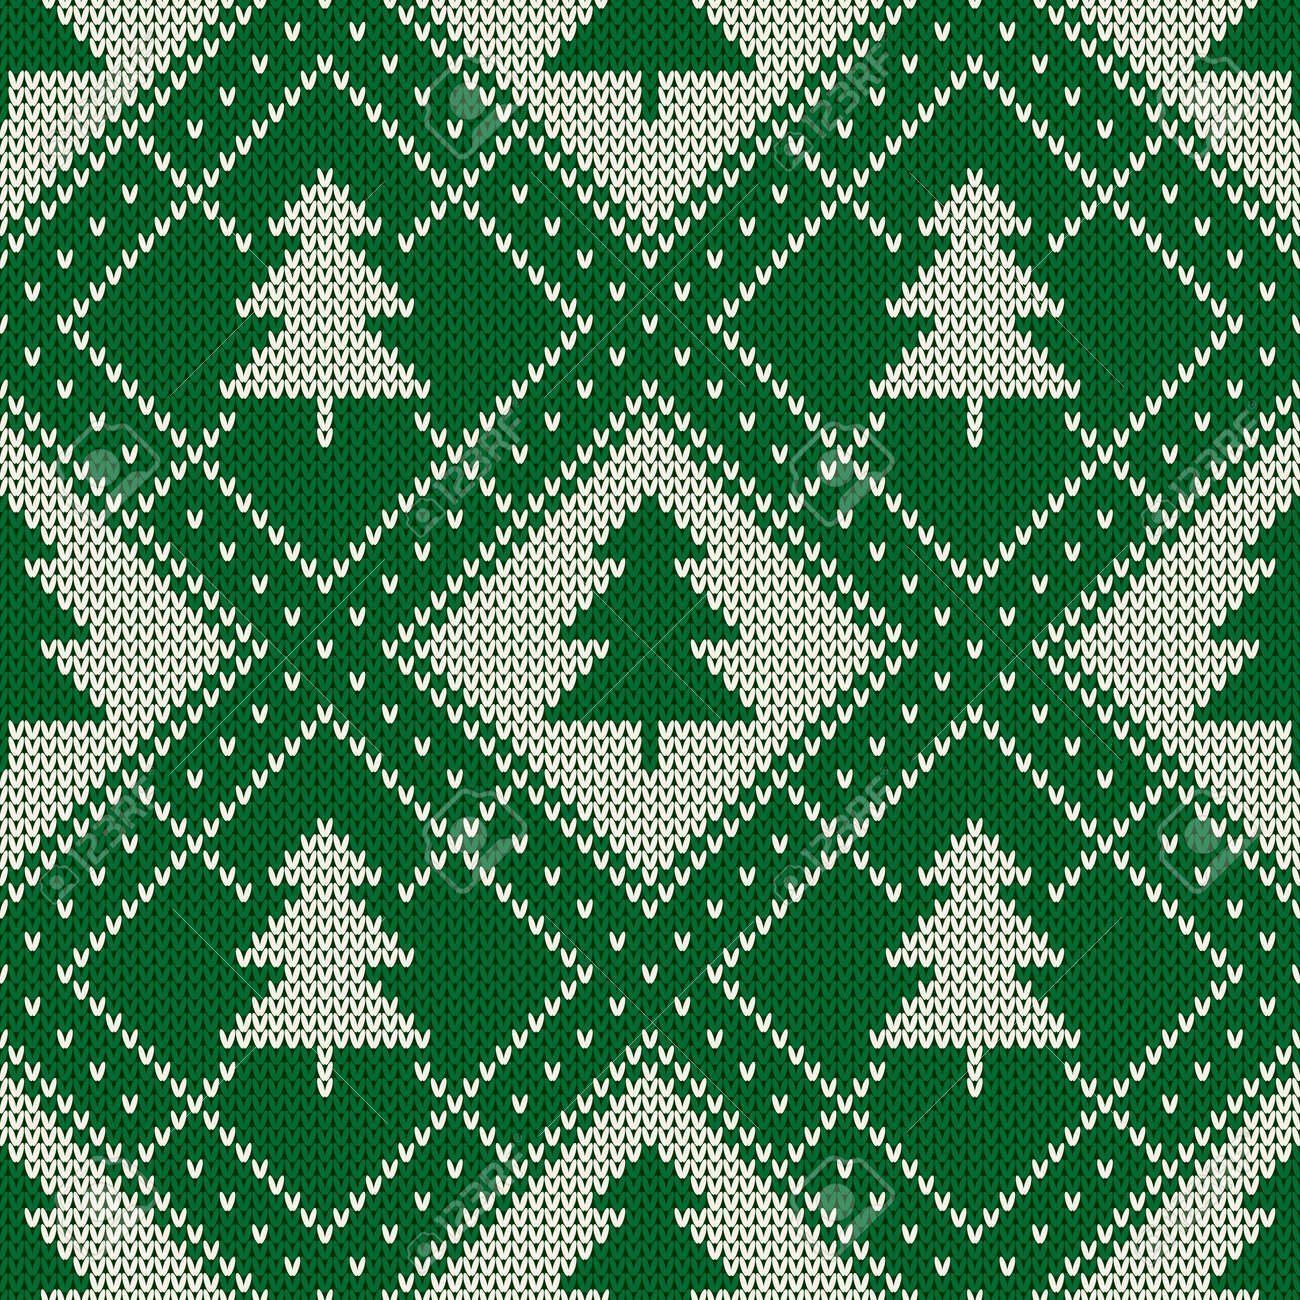 Winter Holiday Seamless Knitting Pattern With A Christmas Trees ...